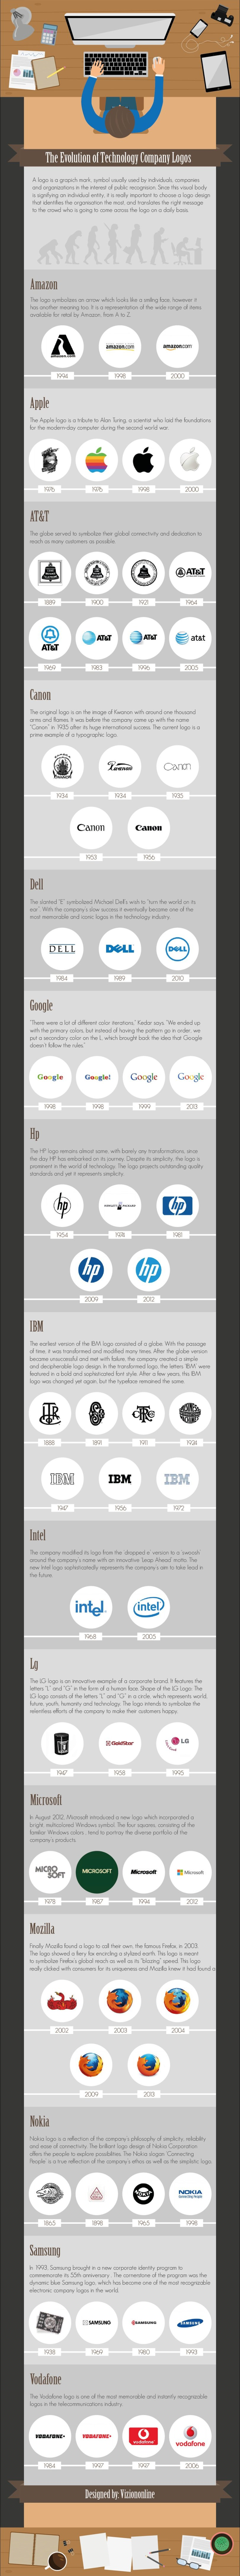 The Evolution of Technology Company Logos by VizionOnline